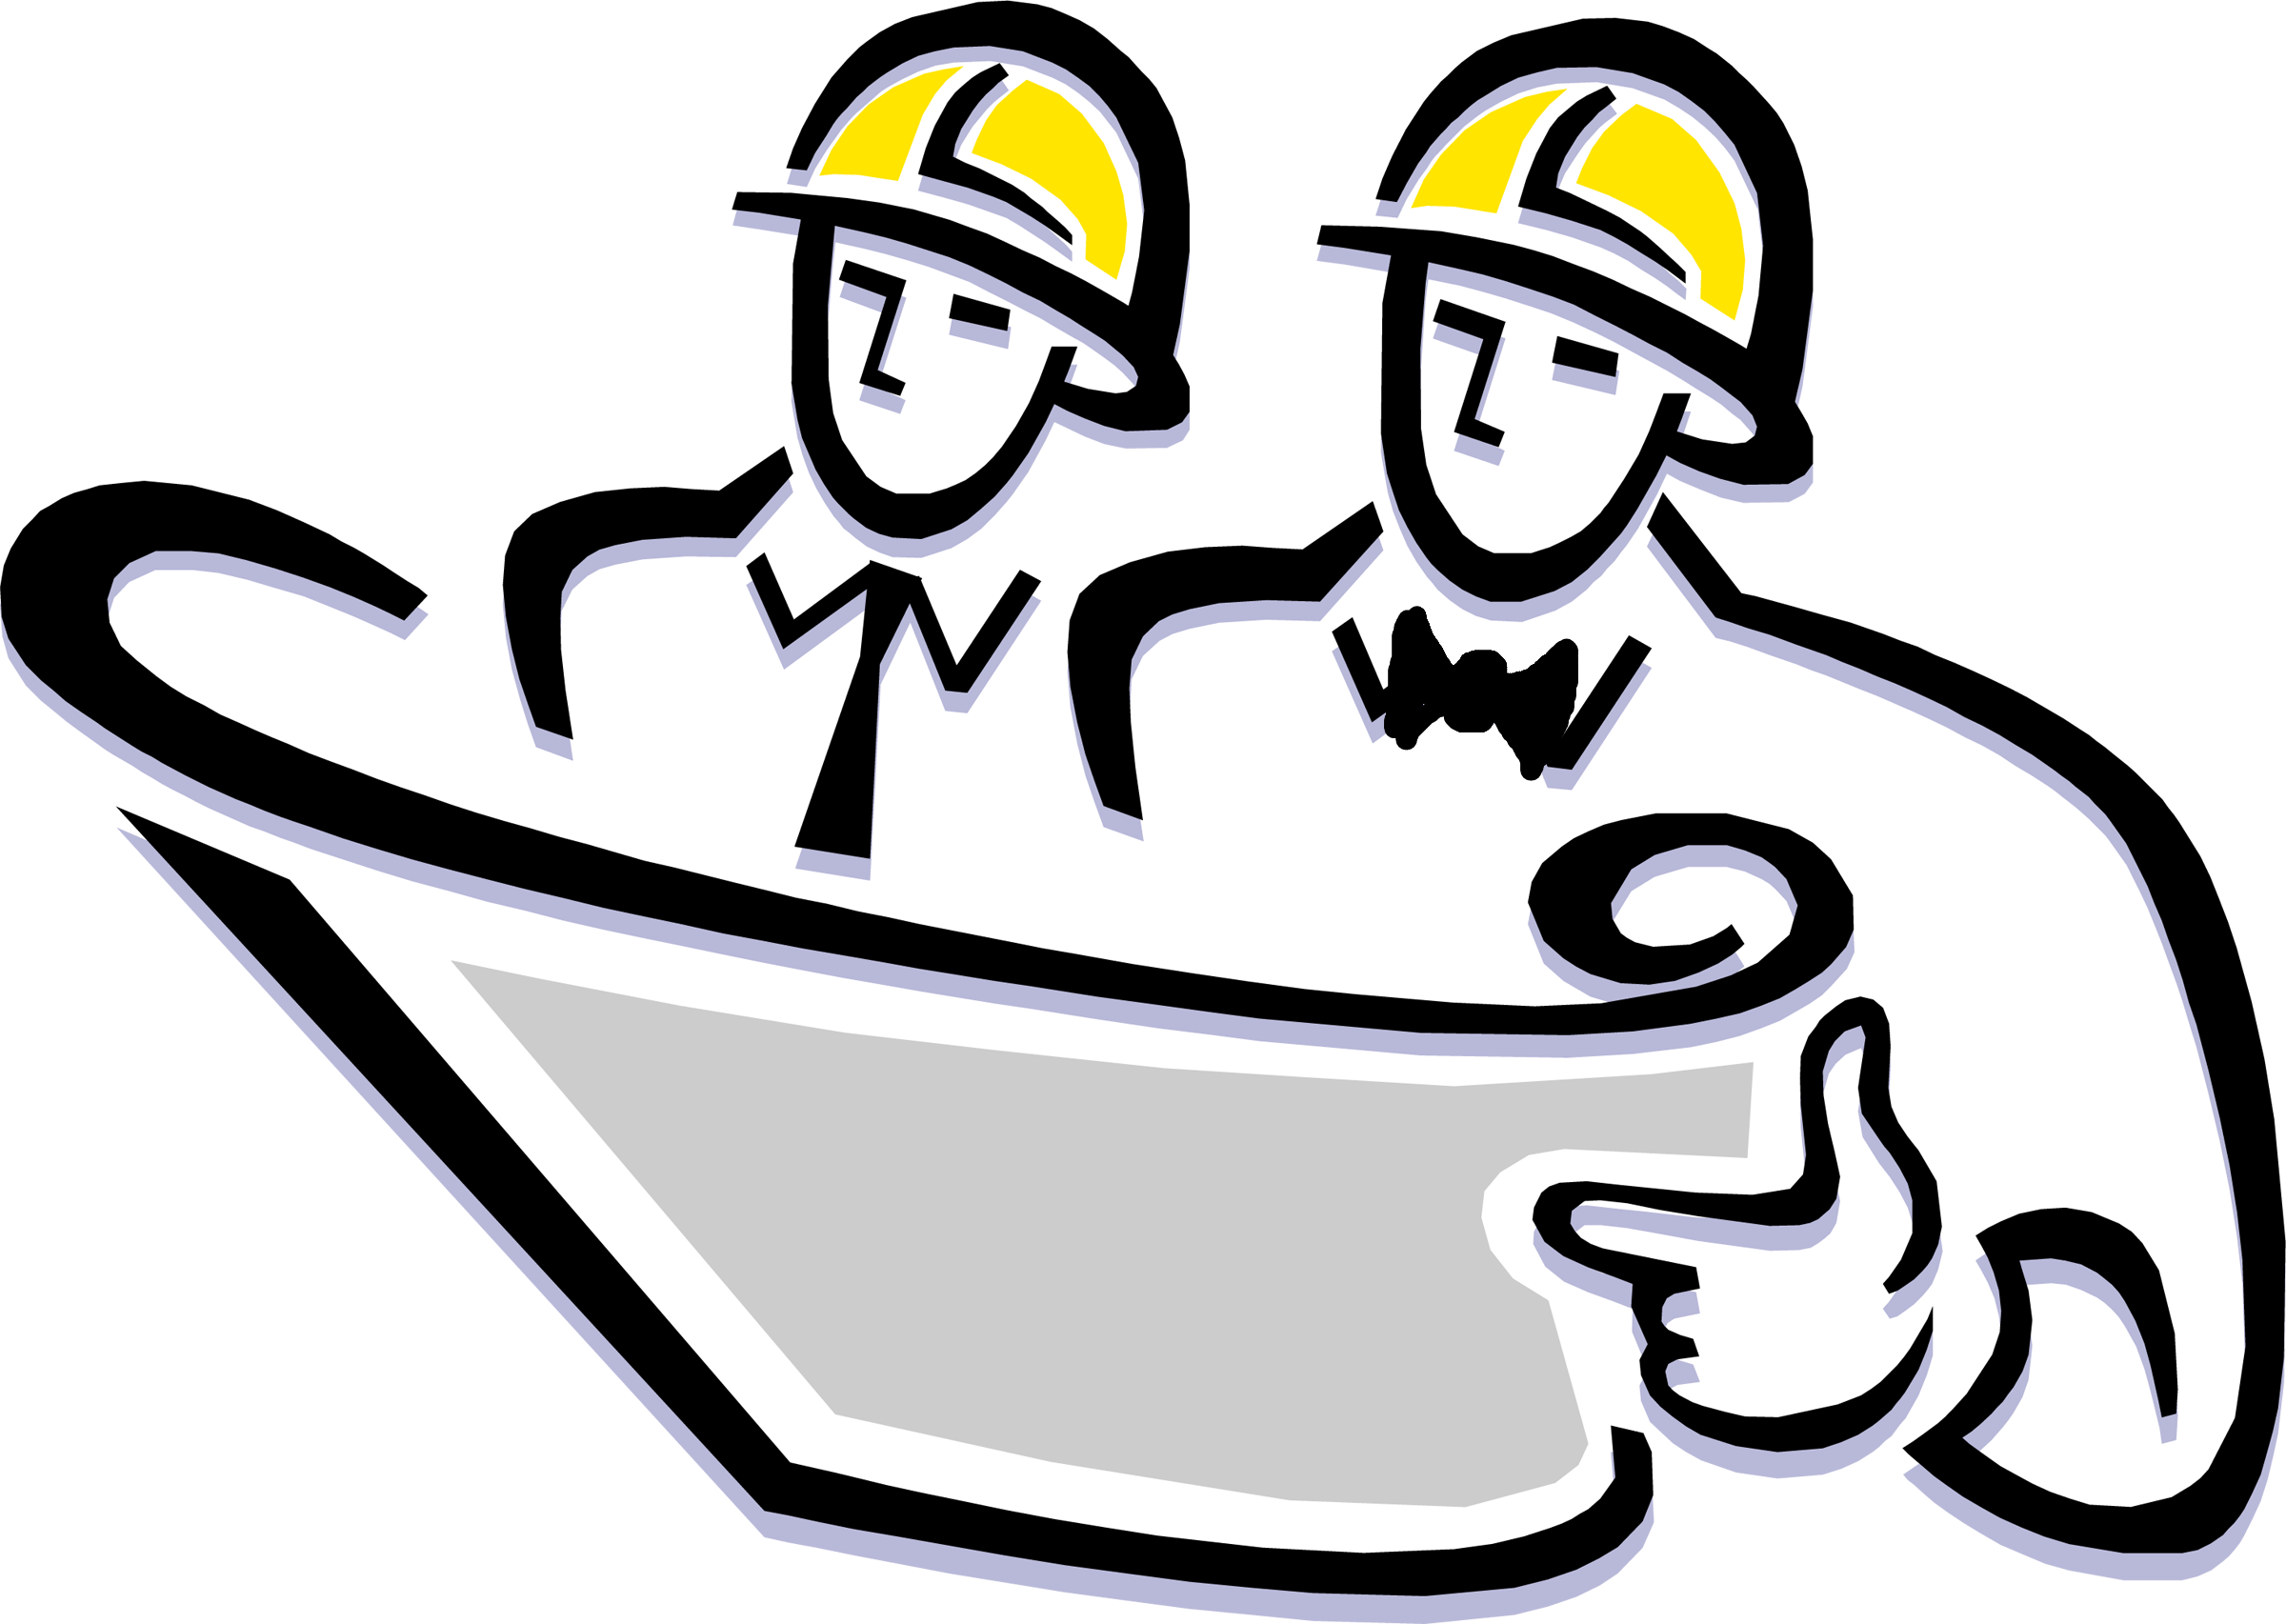 Contractor clipart church. February diary of a